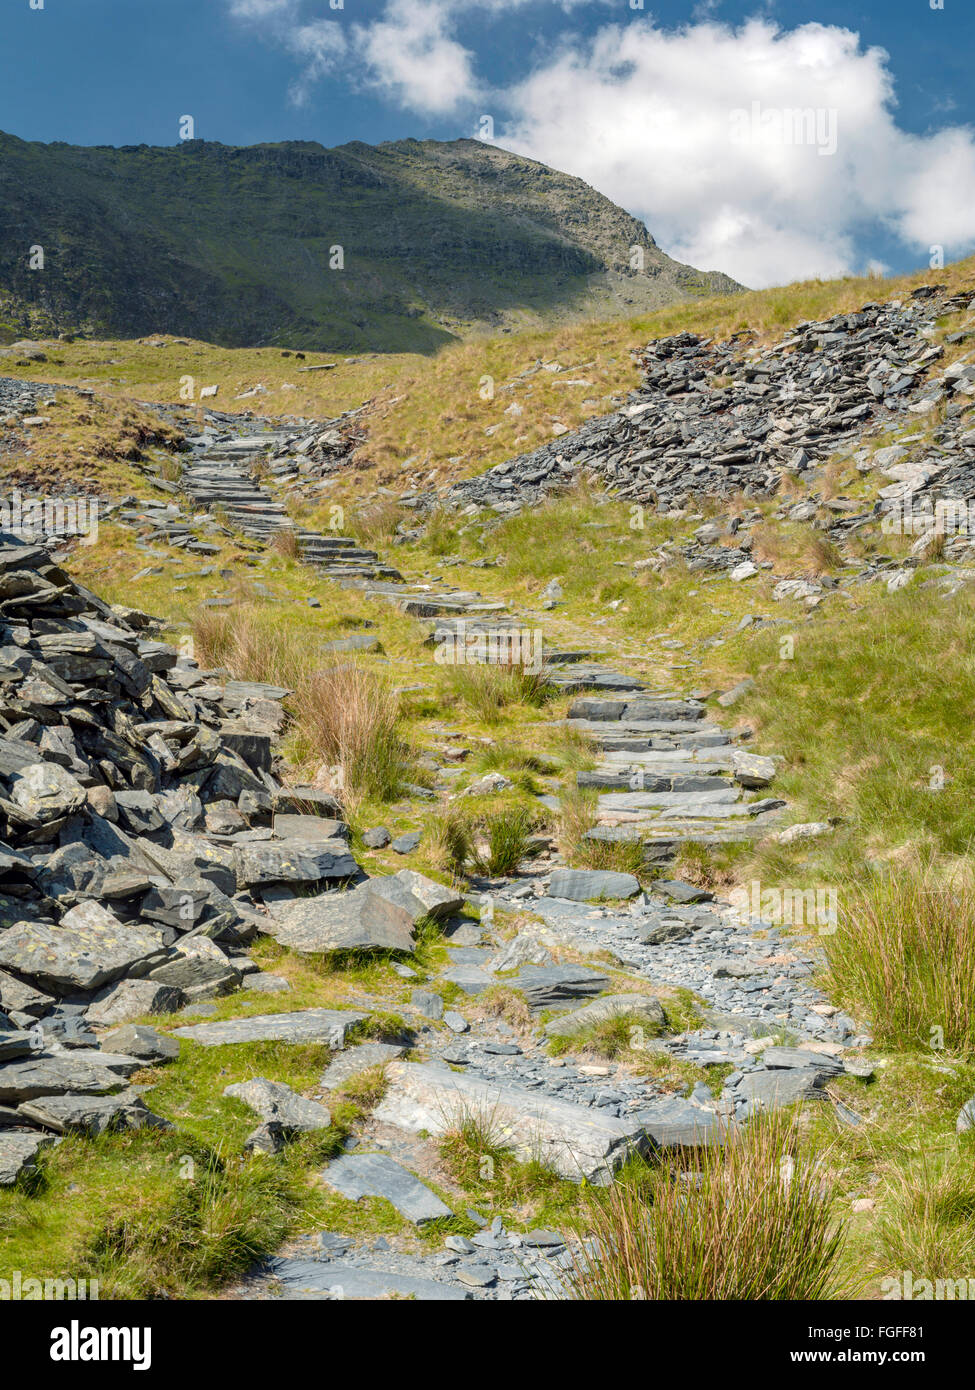 The Watkin path up to the summit of mount Snowdon using a man made path to reduce erosion with the top in view. Stock Photo